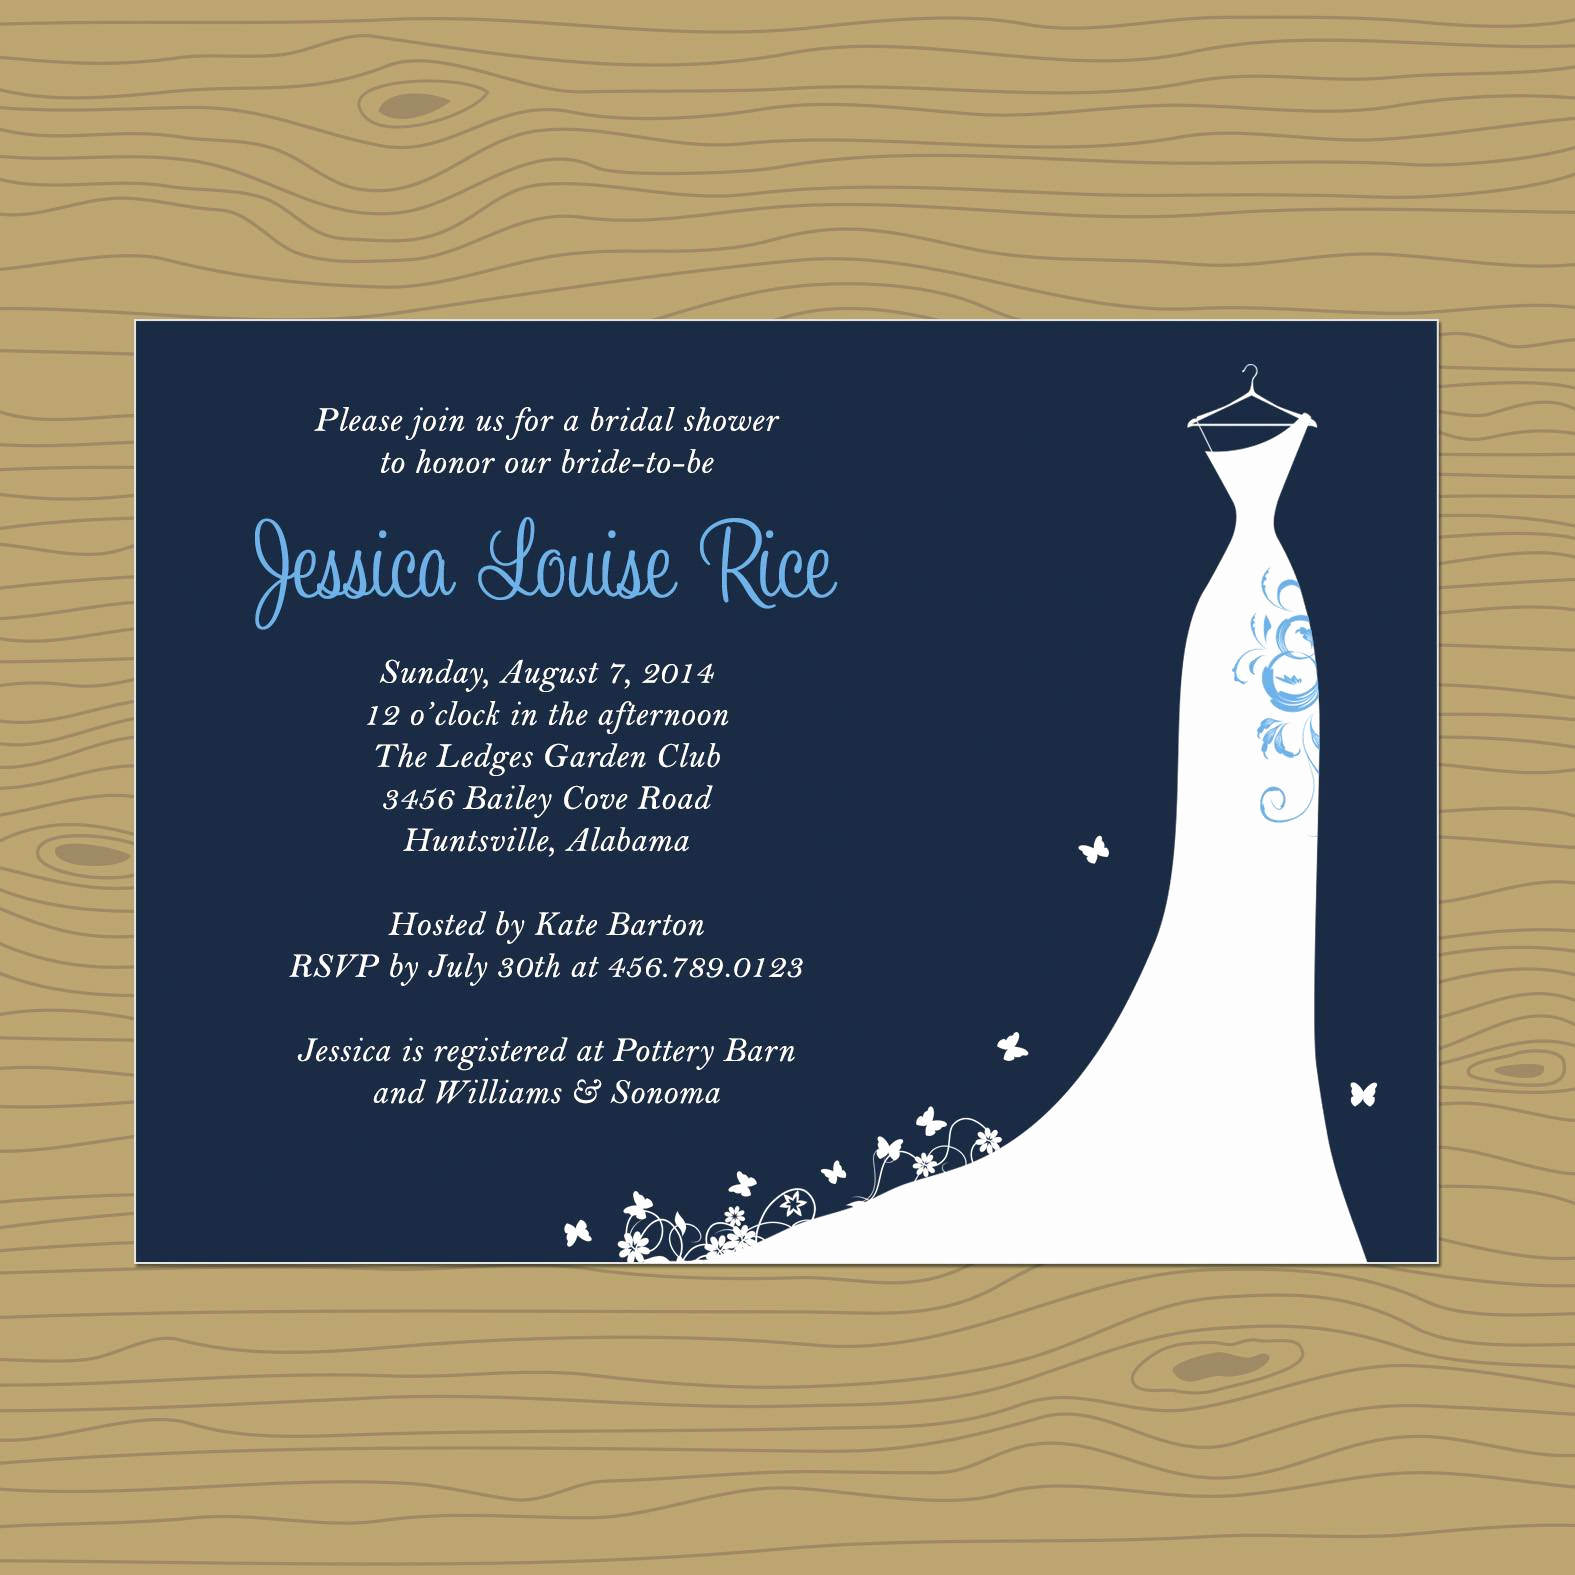 Free Bridal Shower Invitations Luxury Bridal Shower Invitation Templates Bridal Shower